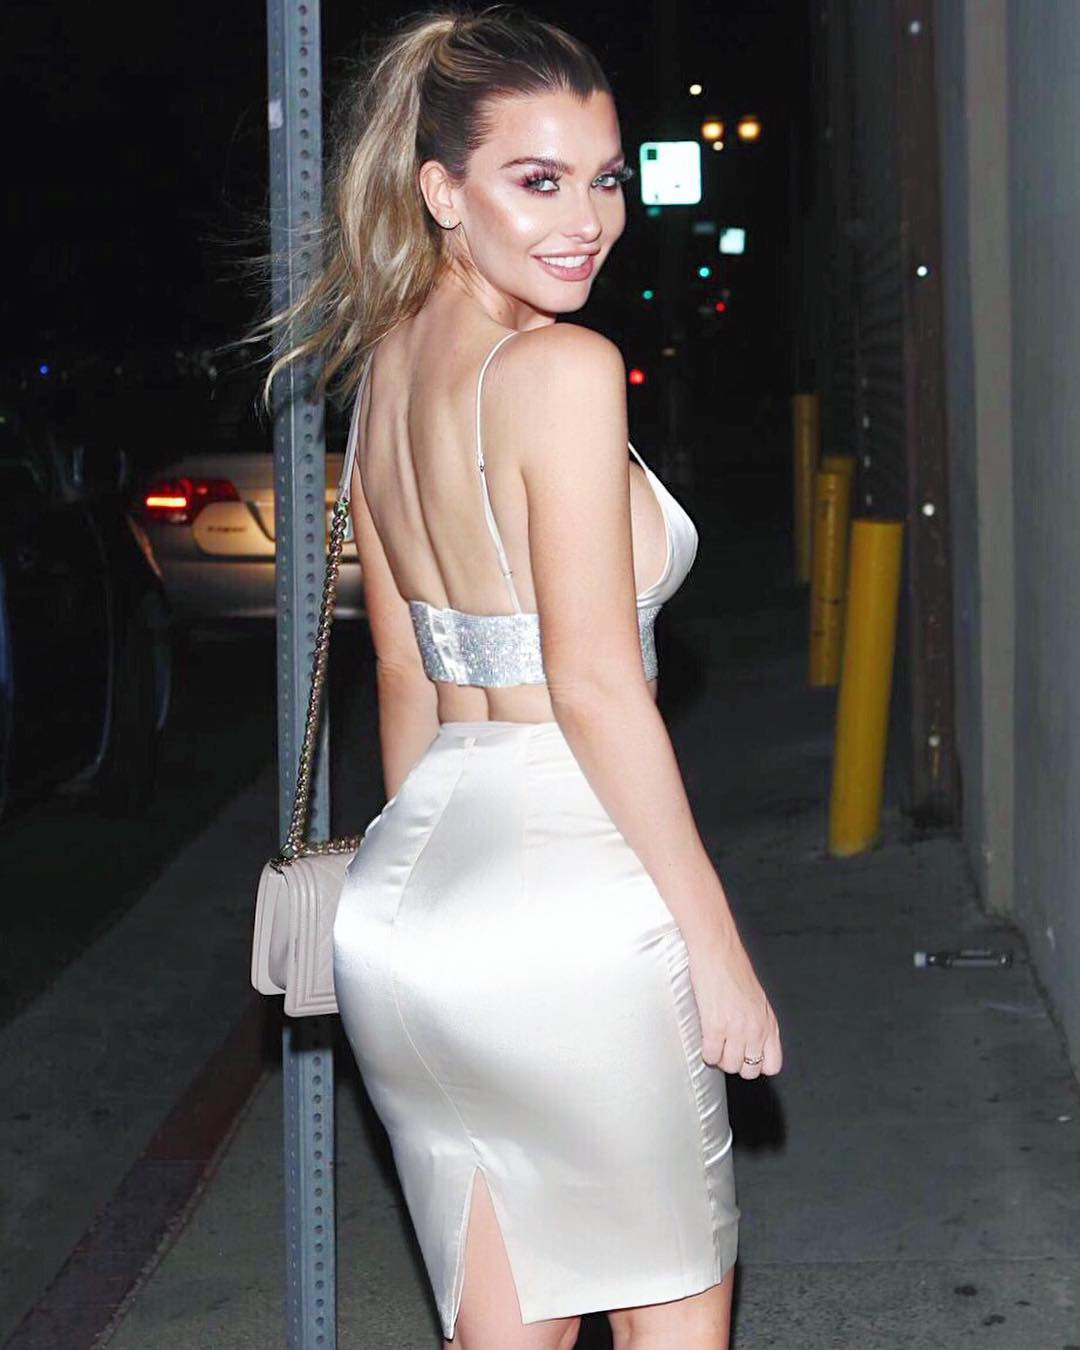 emily sears awesome butt pics